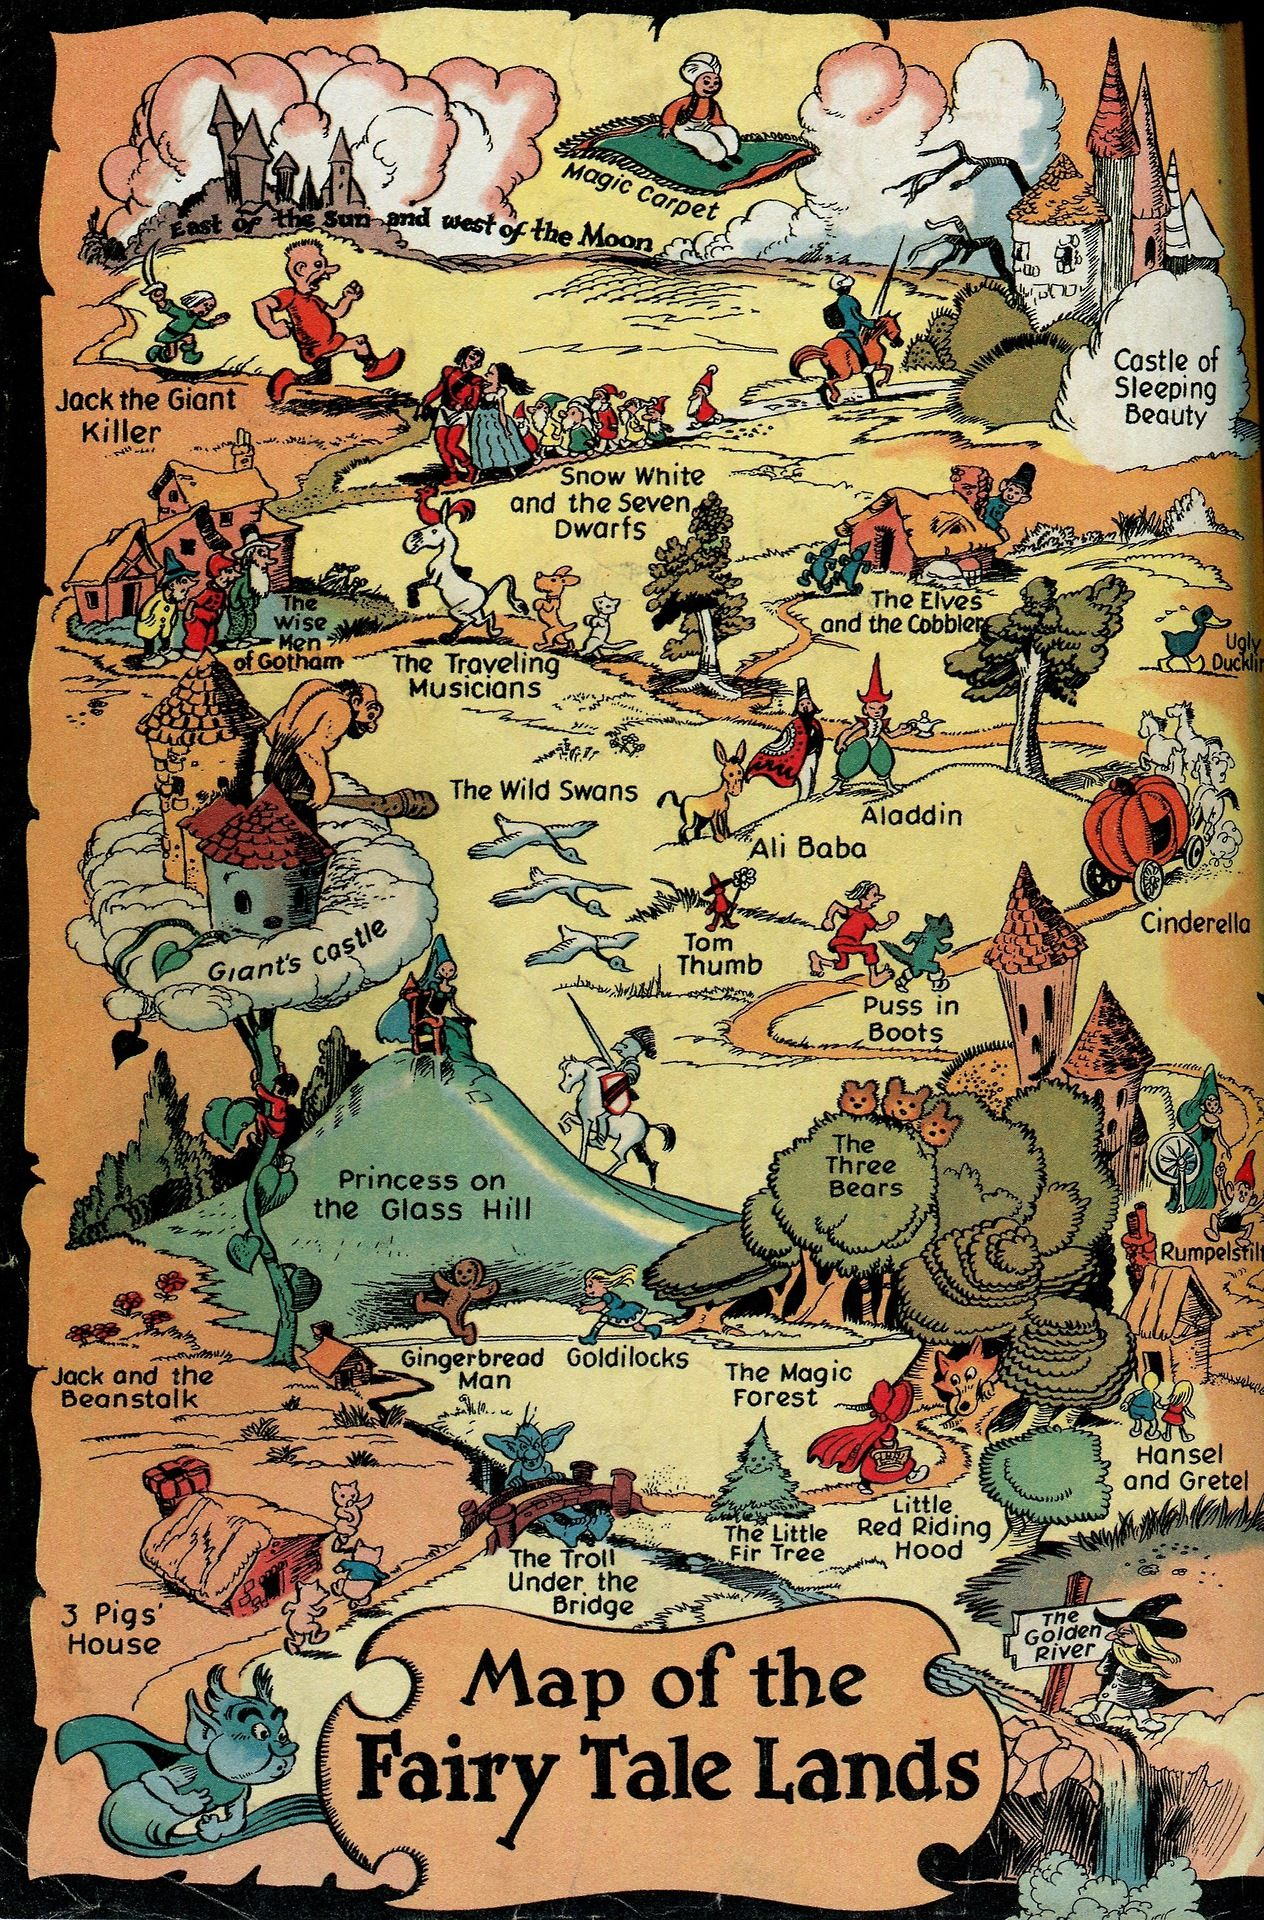 Map Of The Fairy Tale Lands By Walt Kelly As A Back Cover To His Comic Book Series Mid 1940s Fairy Tales Fantasy Map Map